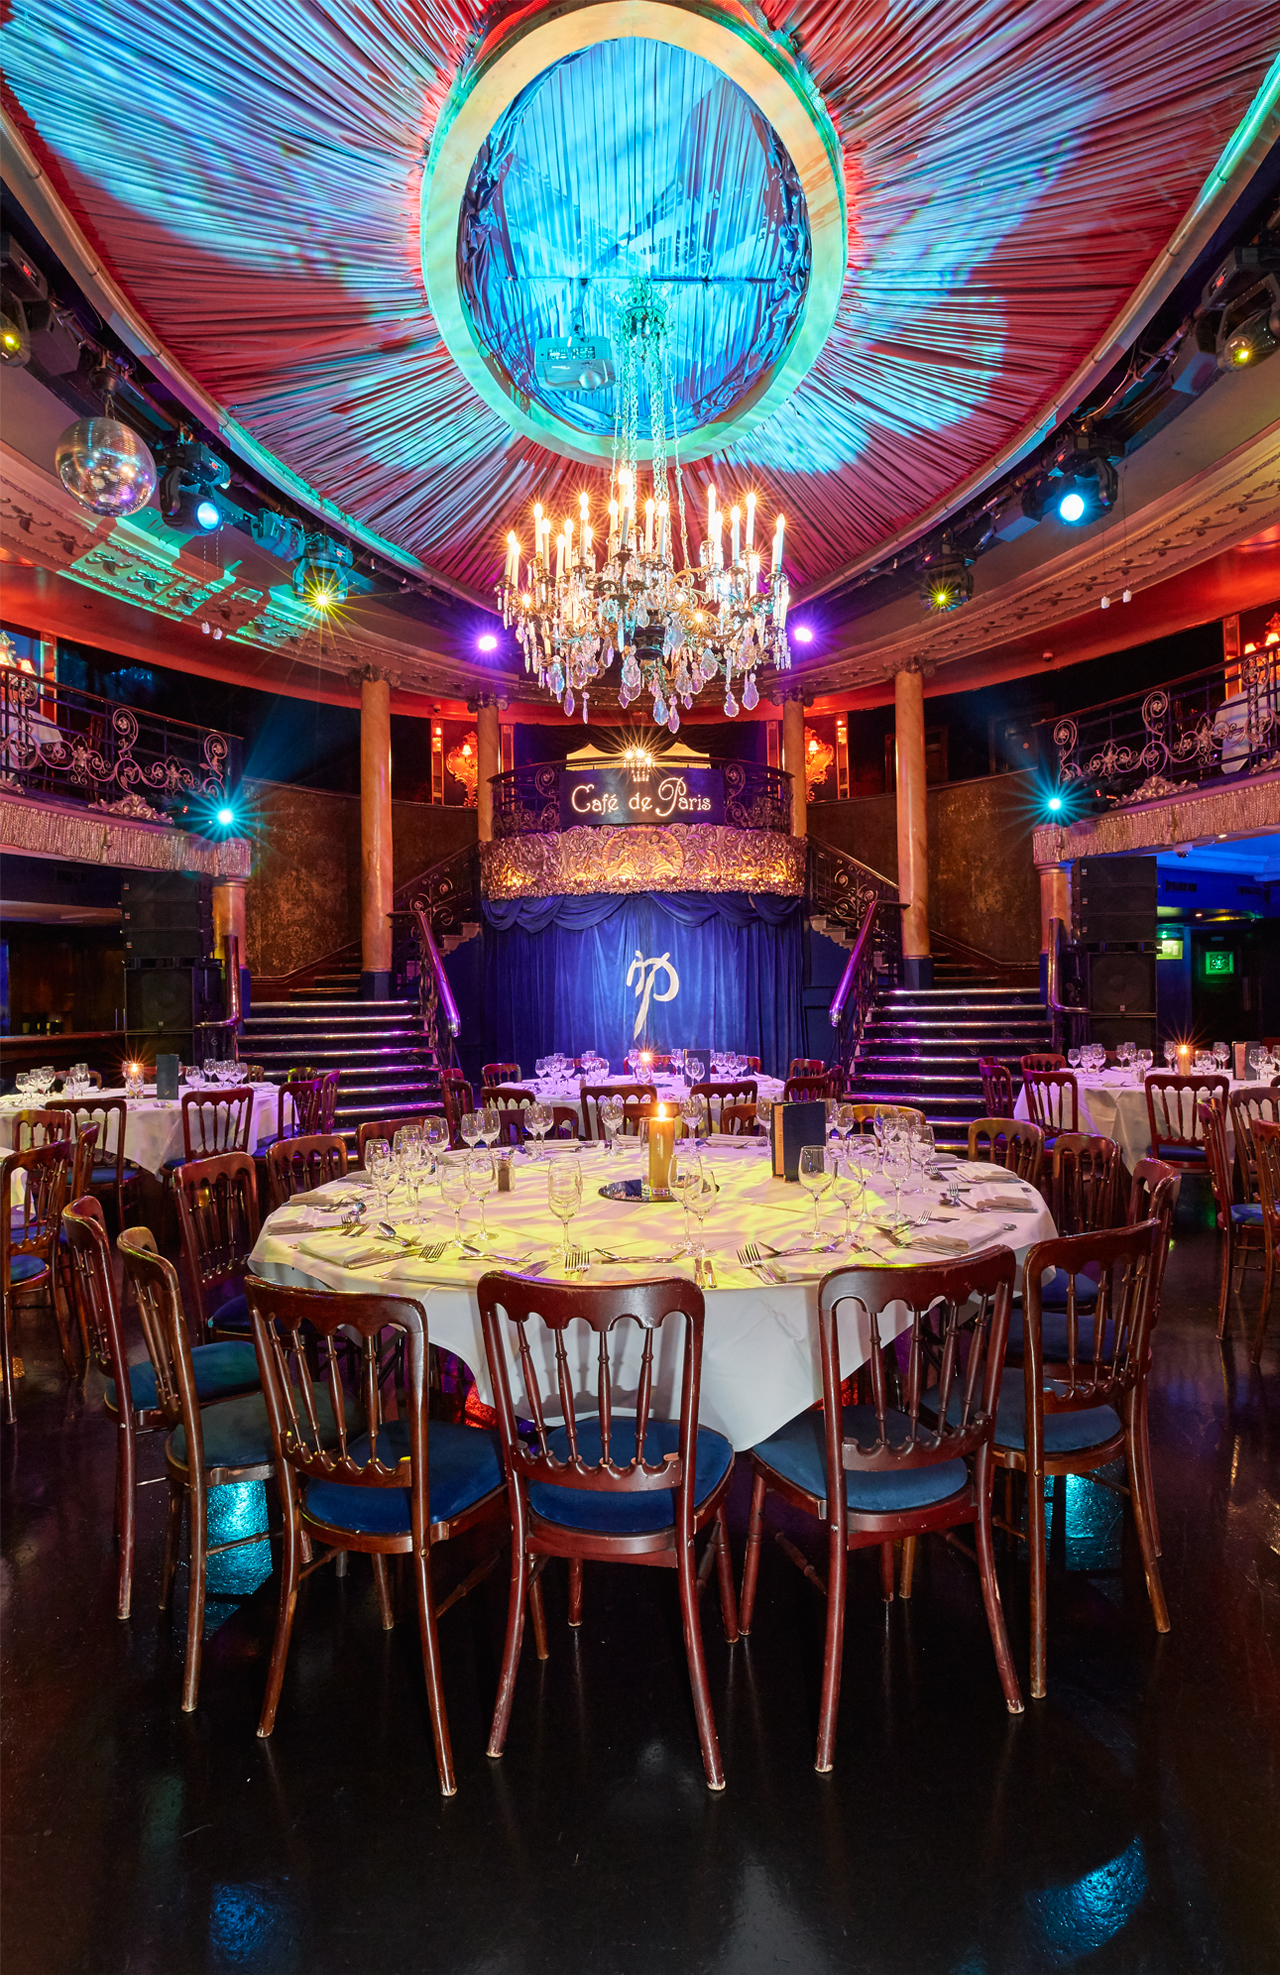 Cafe de Paris table and stage